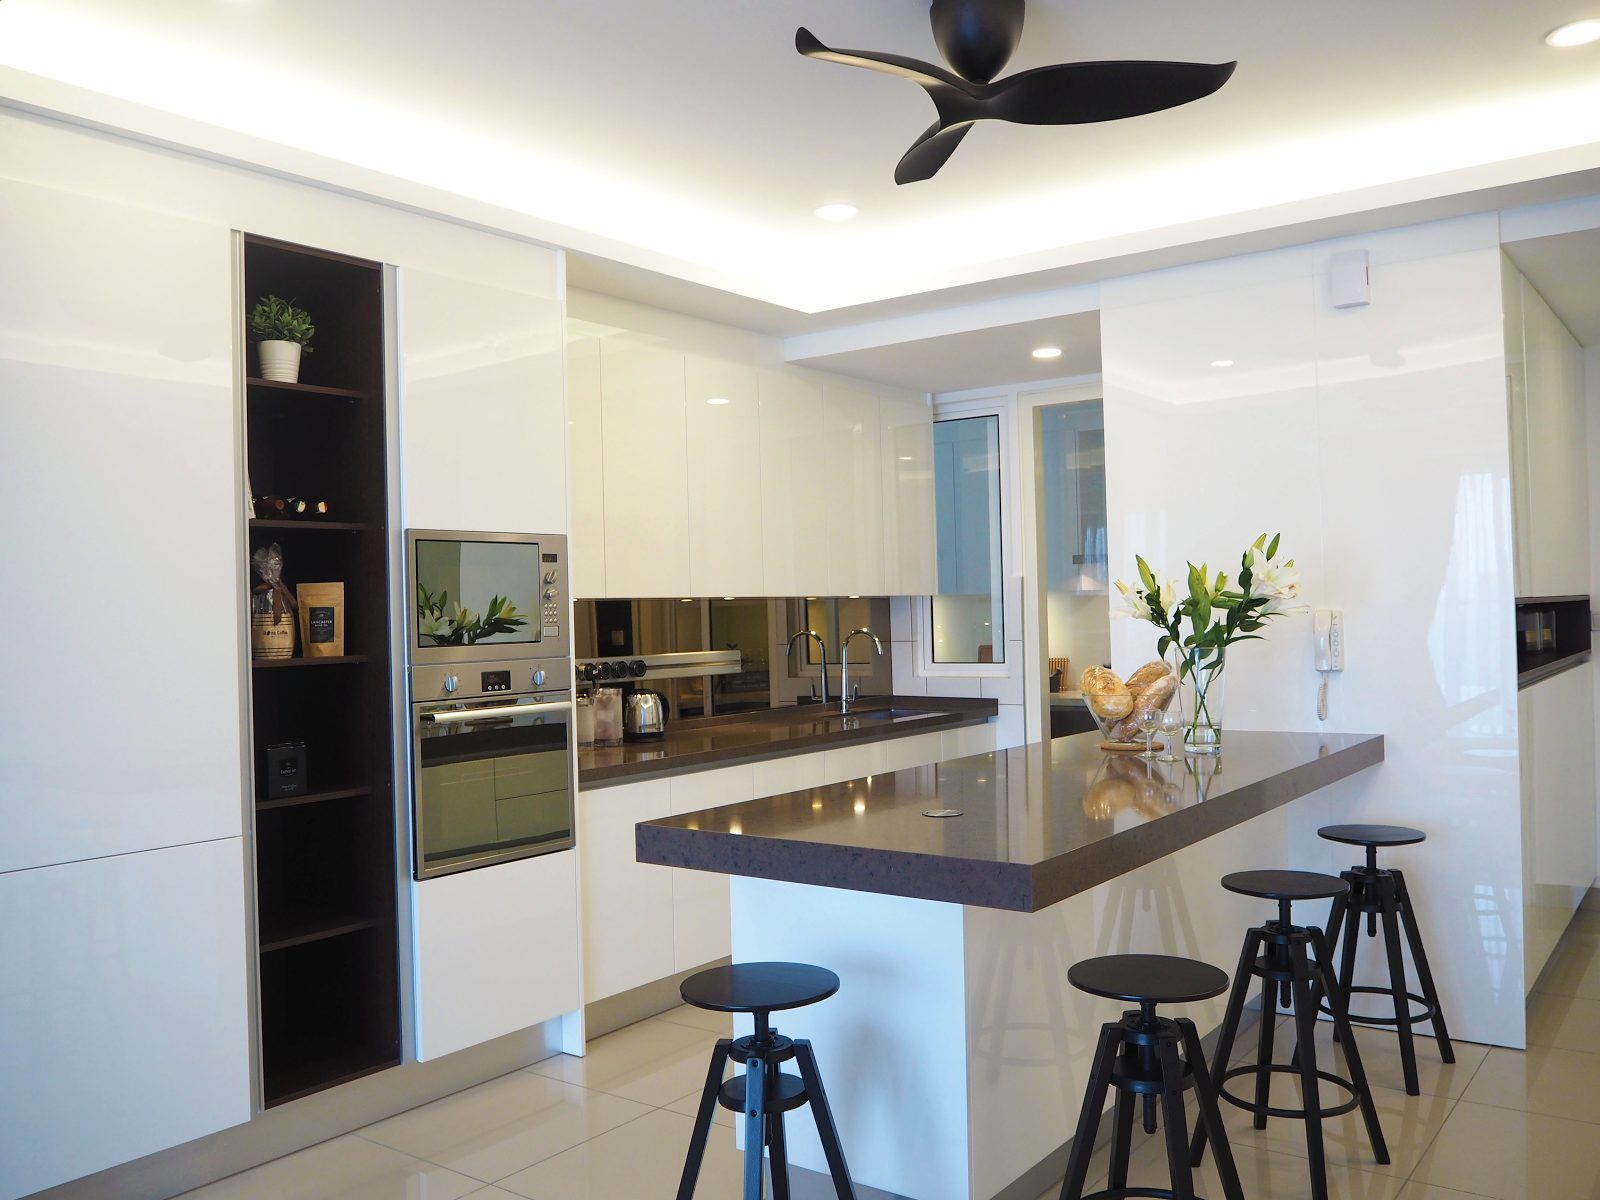 50 Malaysian Kitchen Designs And Ideas Recommend My Interior Design Kitchen Kitchen Interior Condo Kitchen